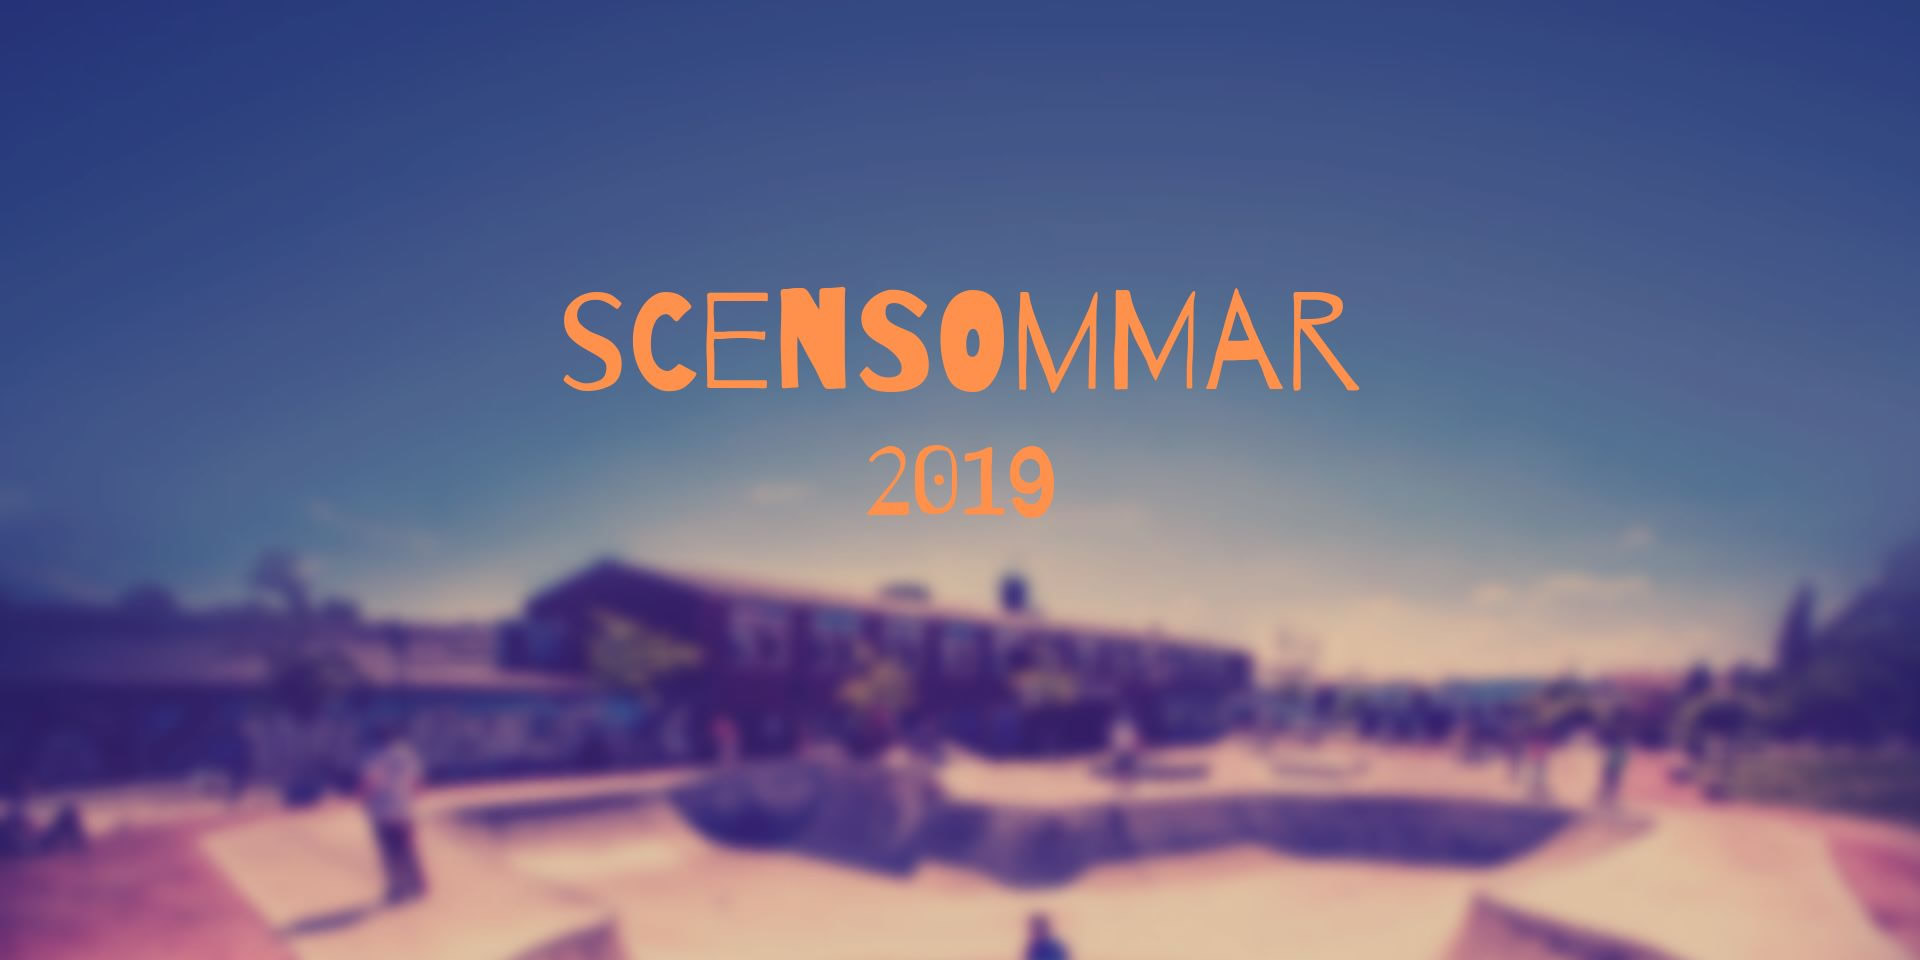 Scensommar 2019